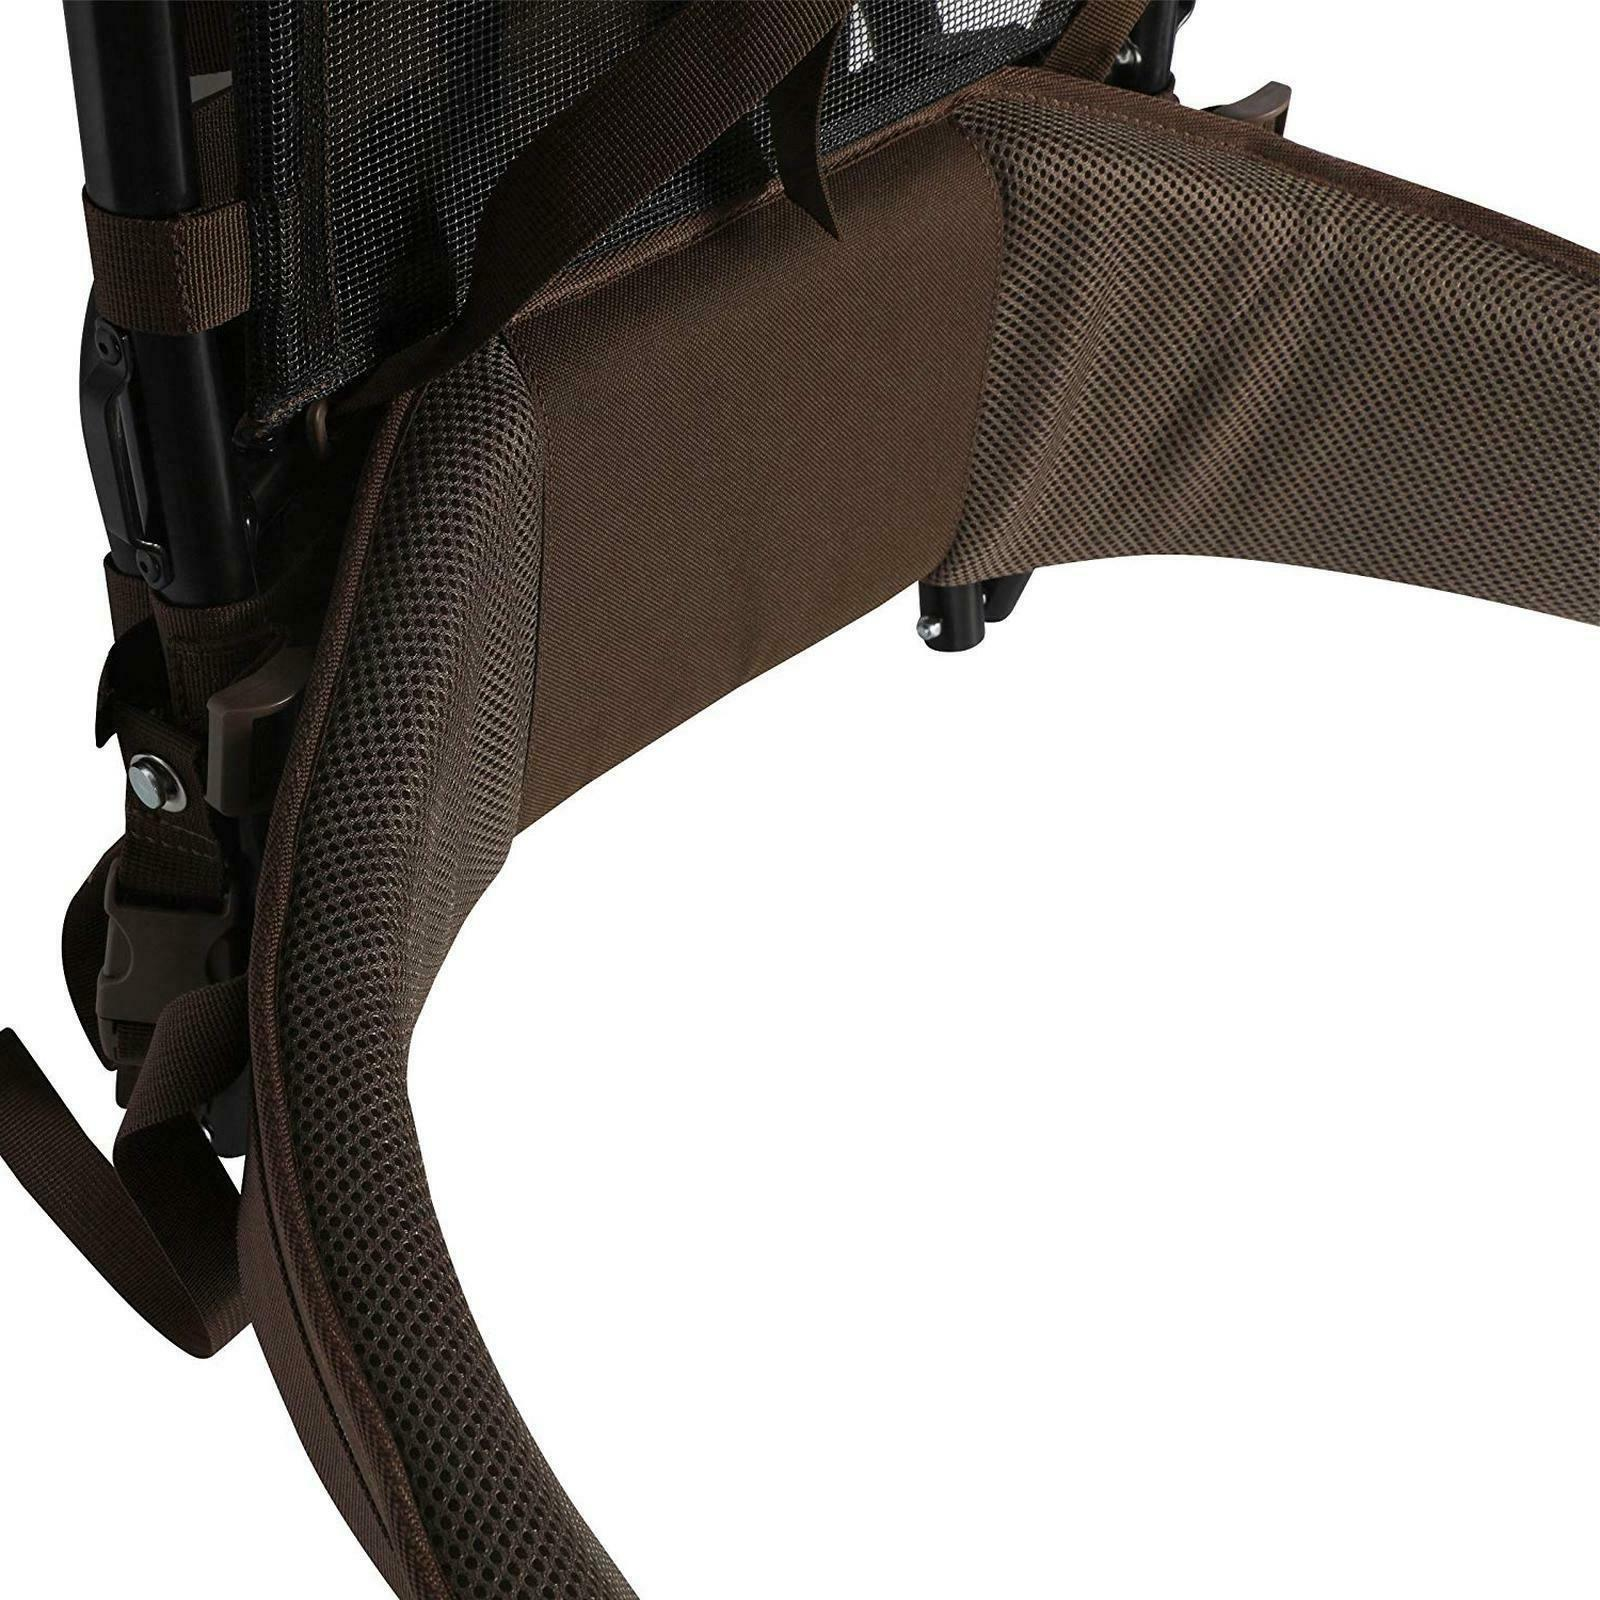 Large Hunting Frame Freight Hiking Gear Meat